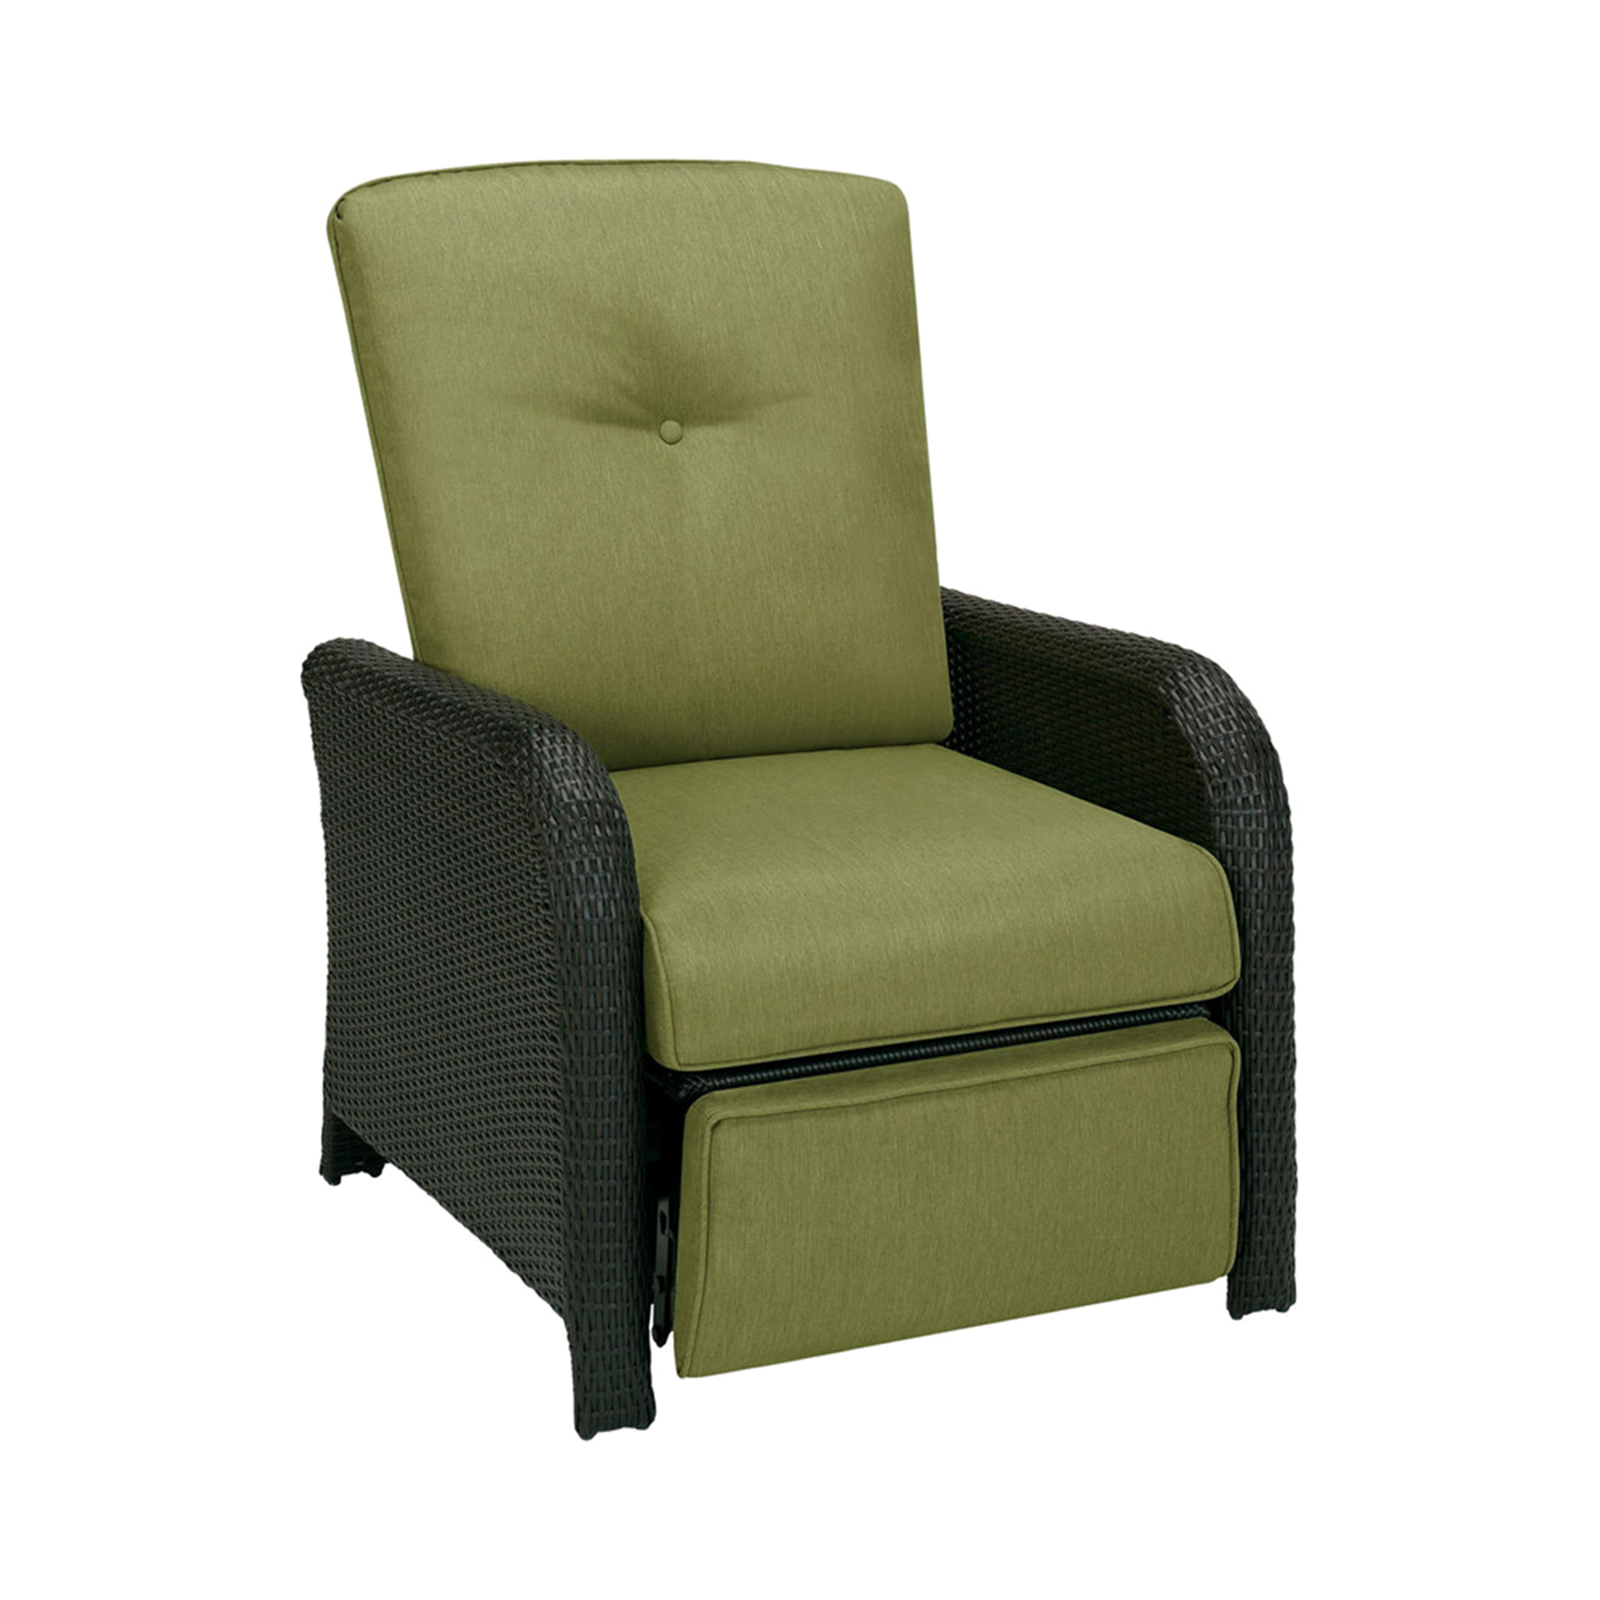 recliner patio chair oxo taupe walnut high chairs outdoor recliners kmart hanover strathmere luxury rich browncilantro green